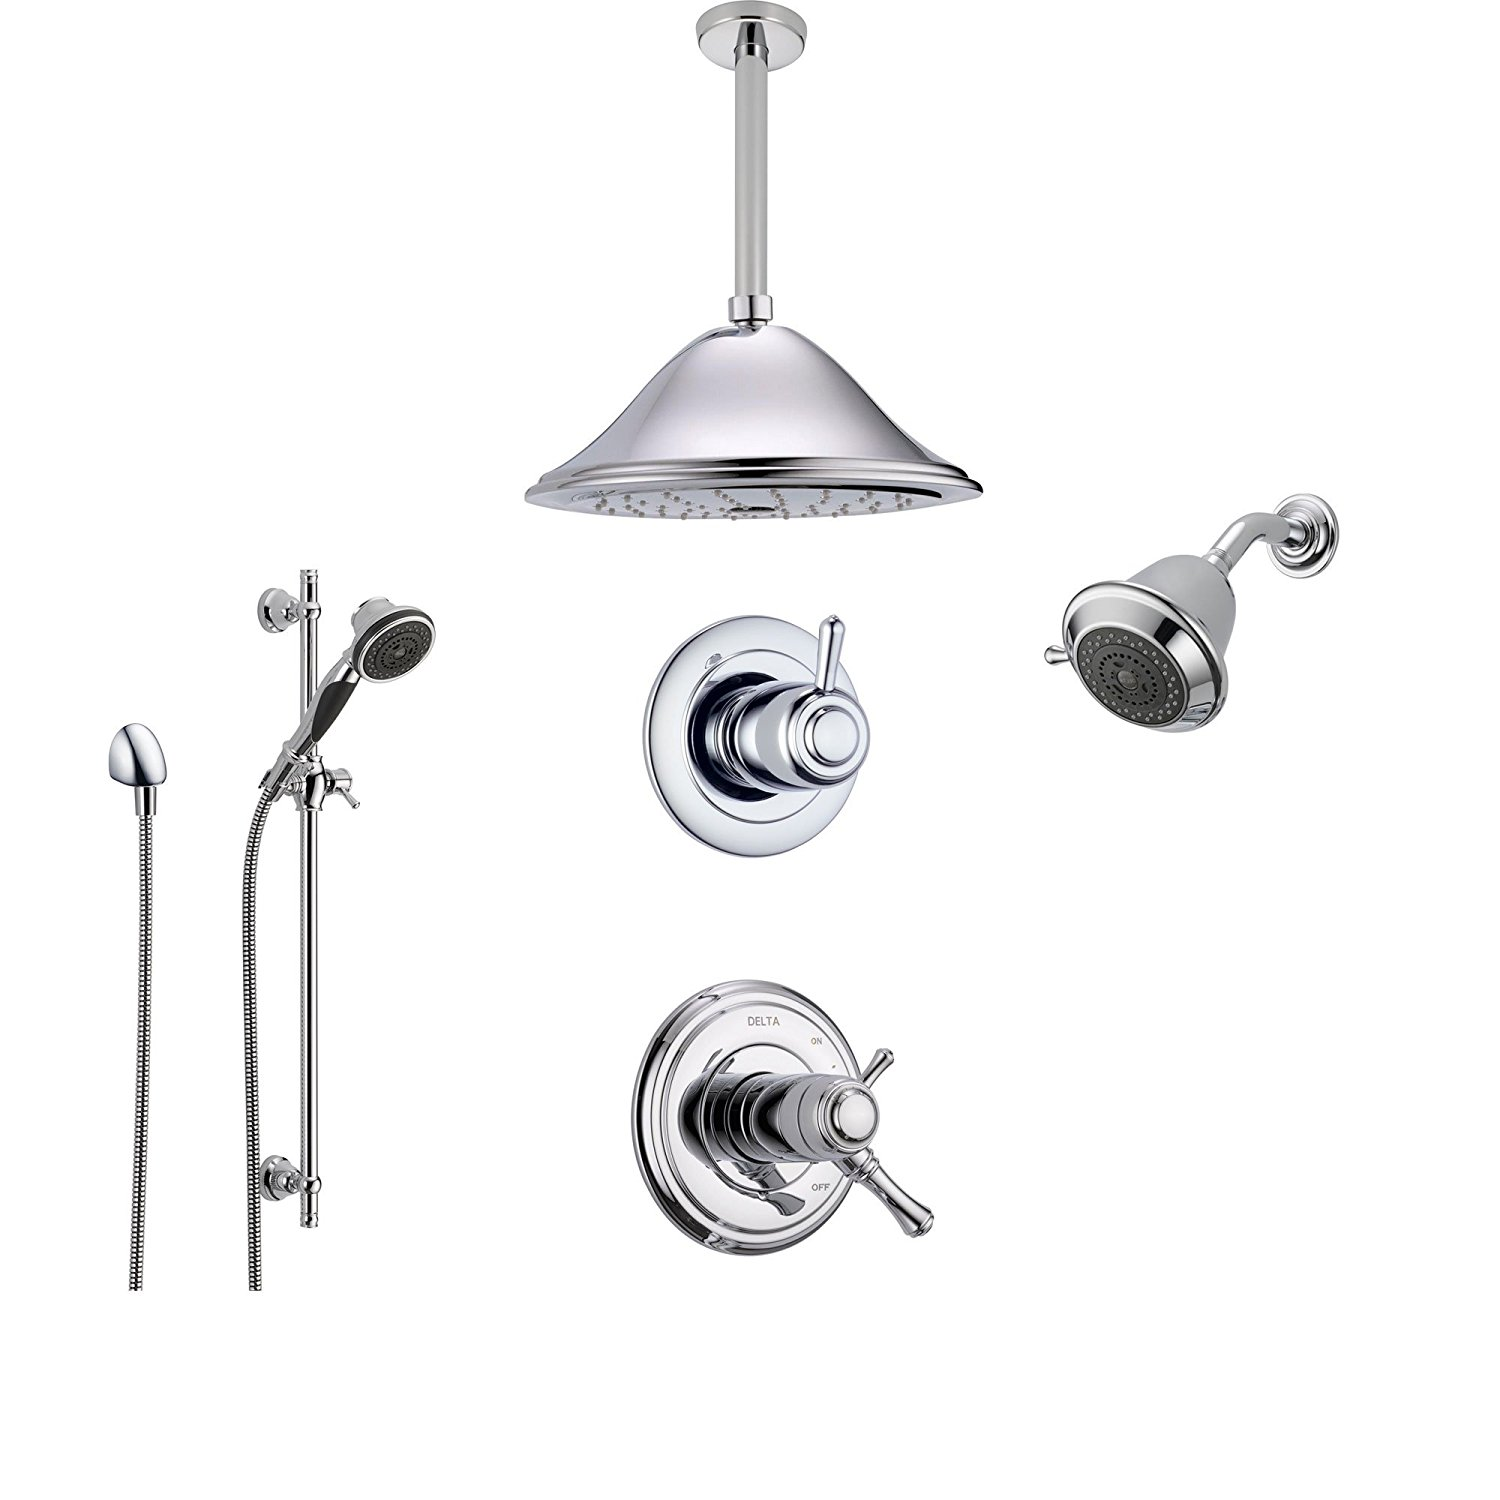 Buy Delta Cassidy Chrome Shower System With Thermostatic